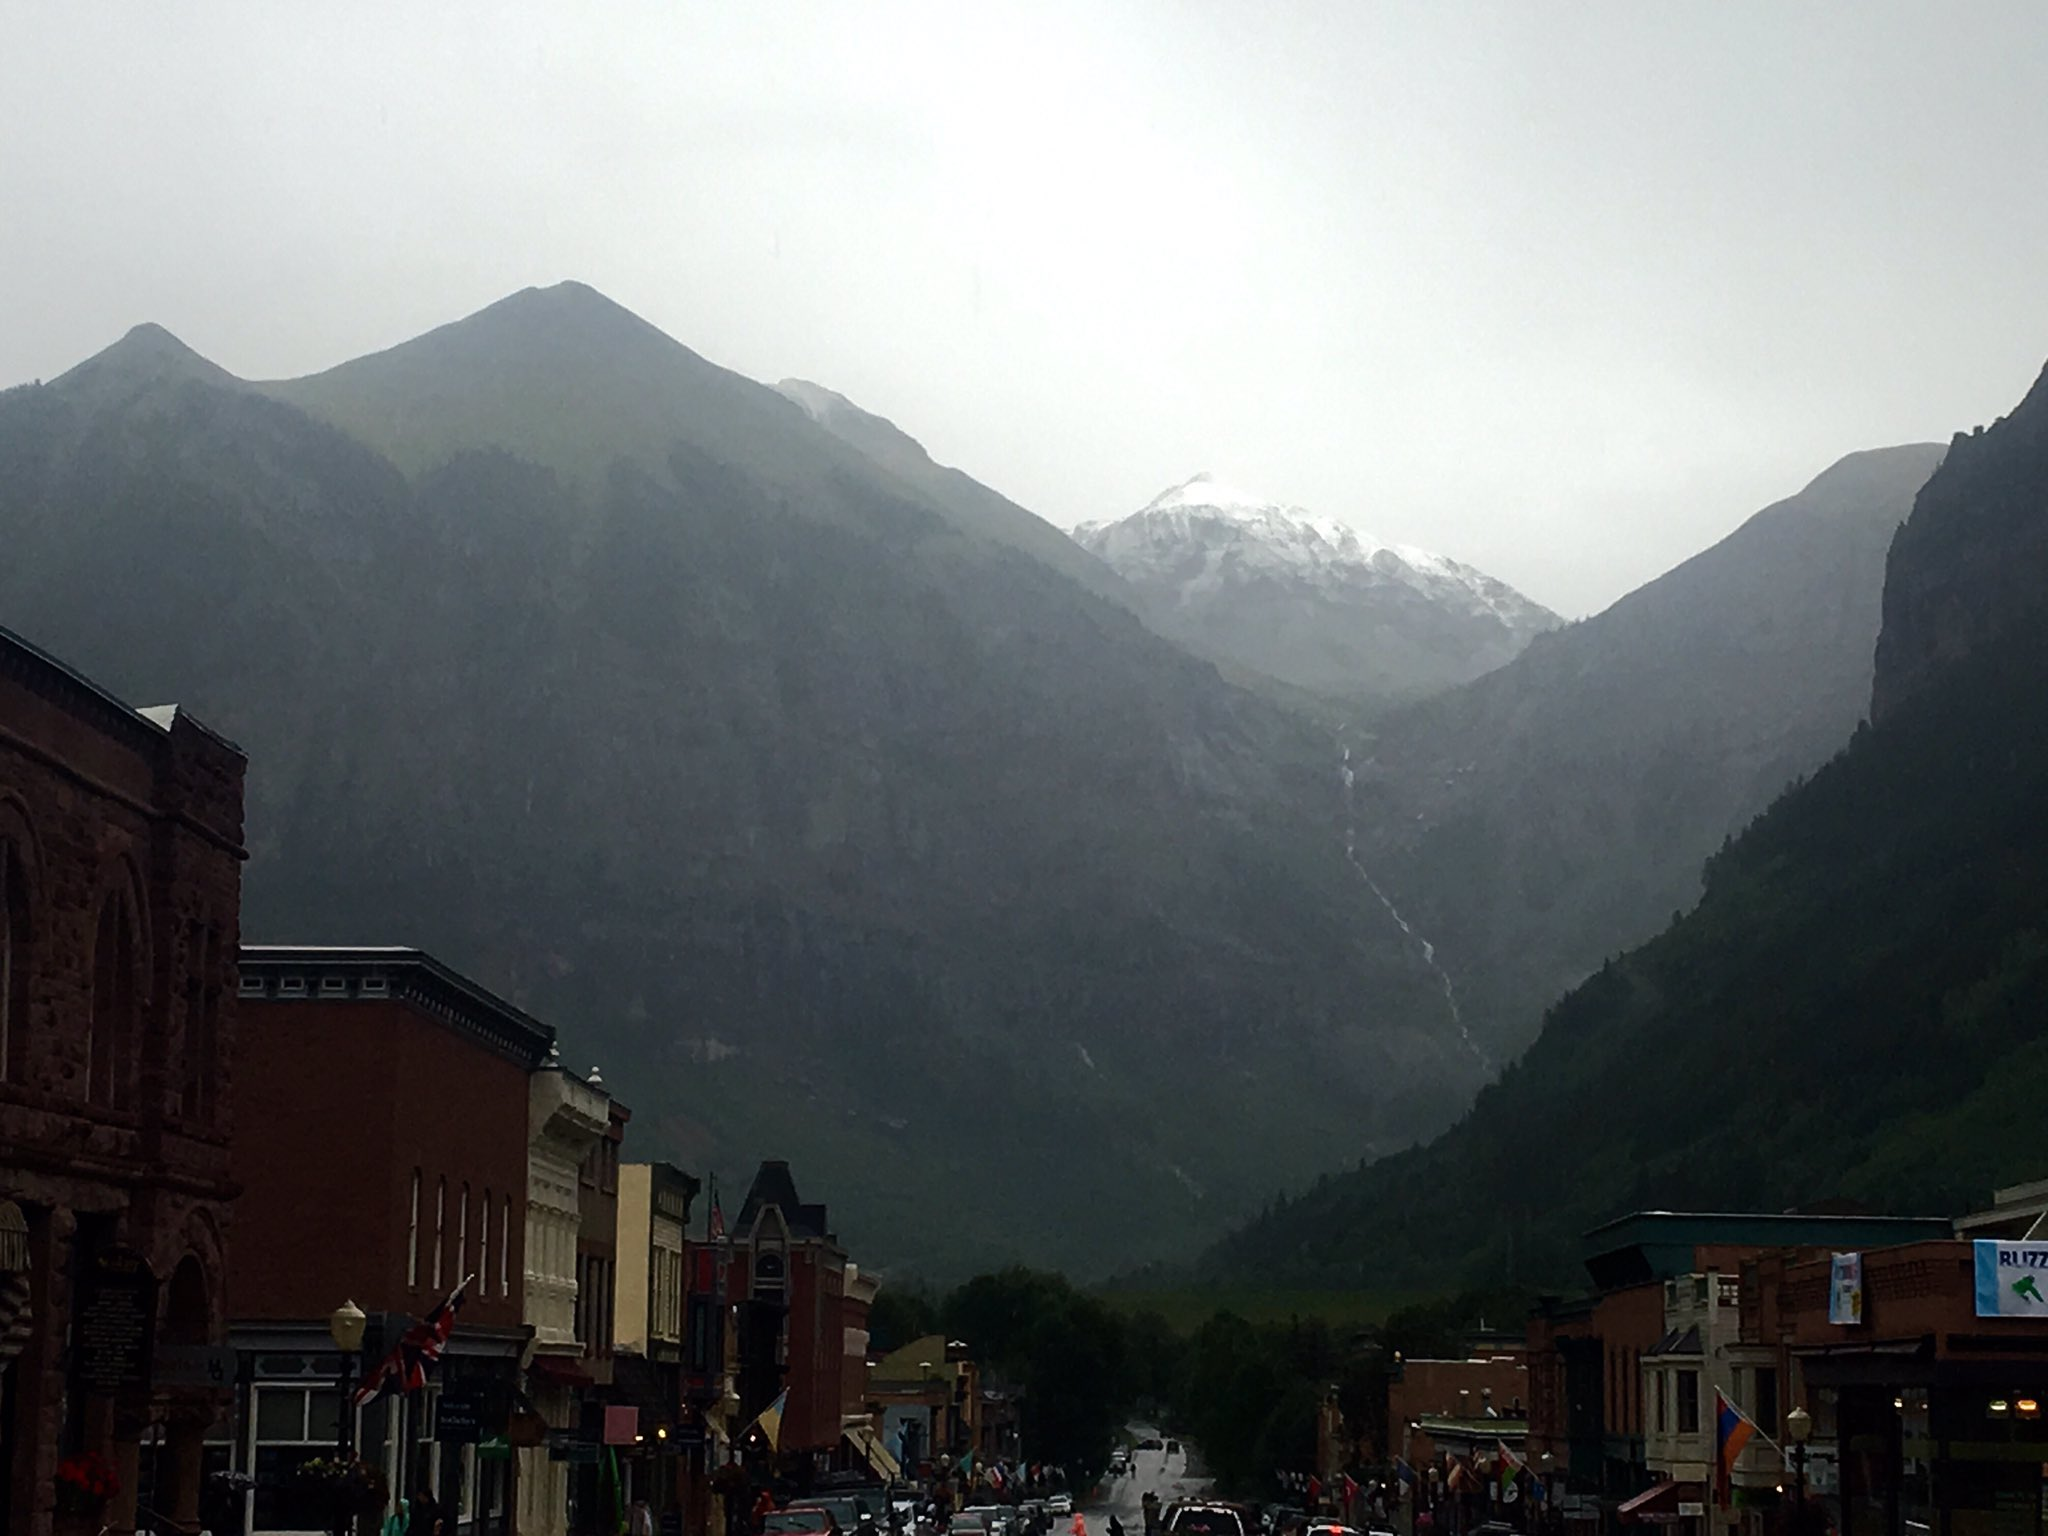 Snow on the highest peaks outside of Telluride on Monday. (courtesy: Tom Watkinson)